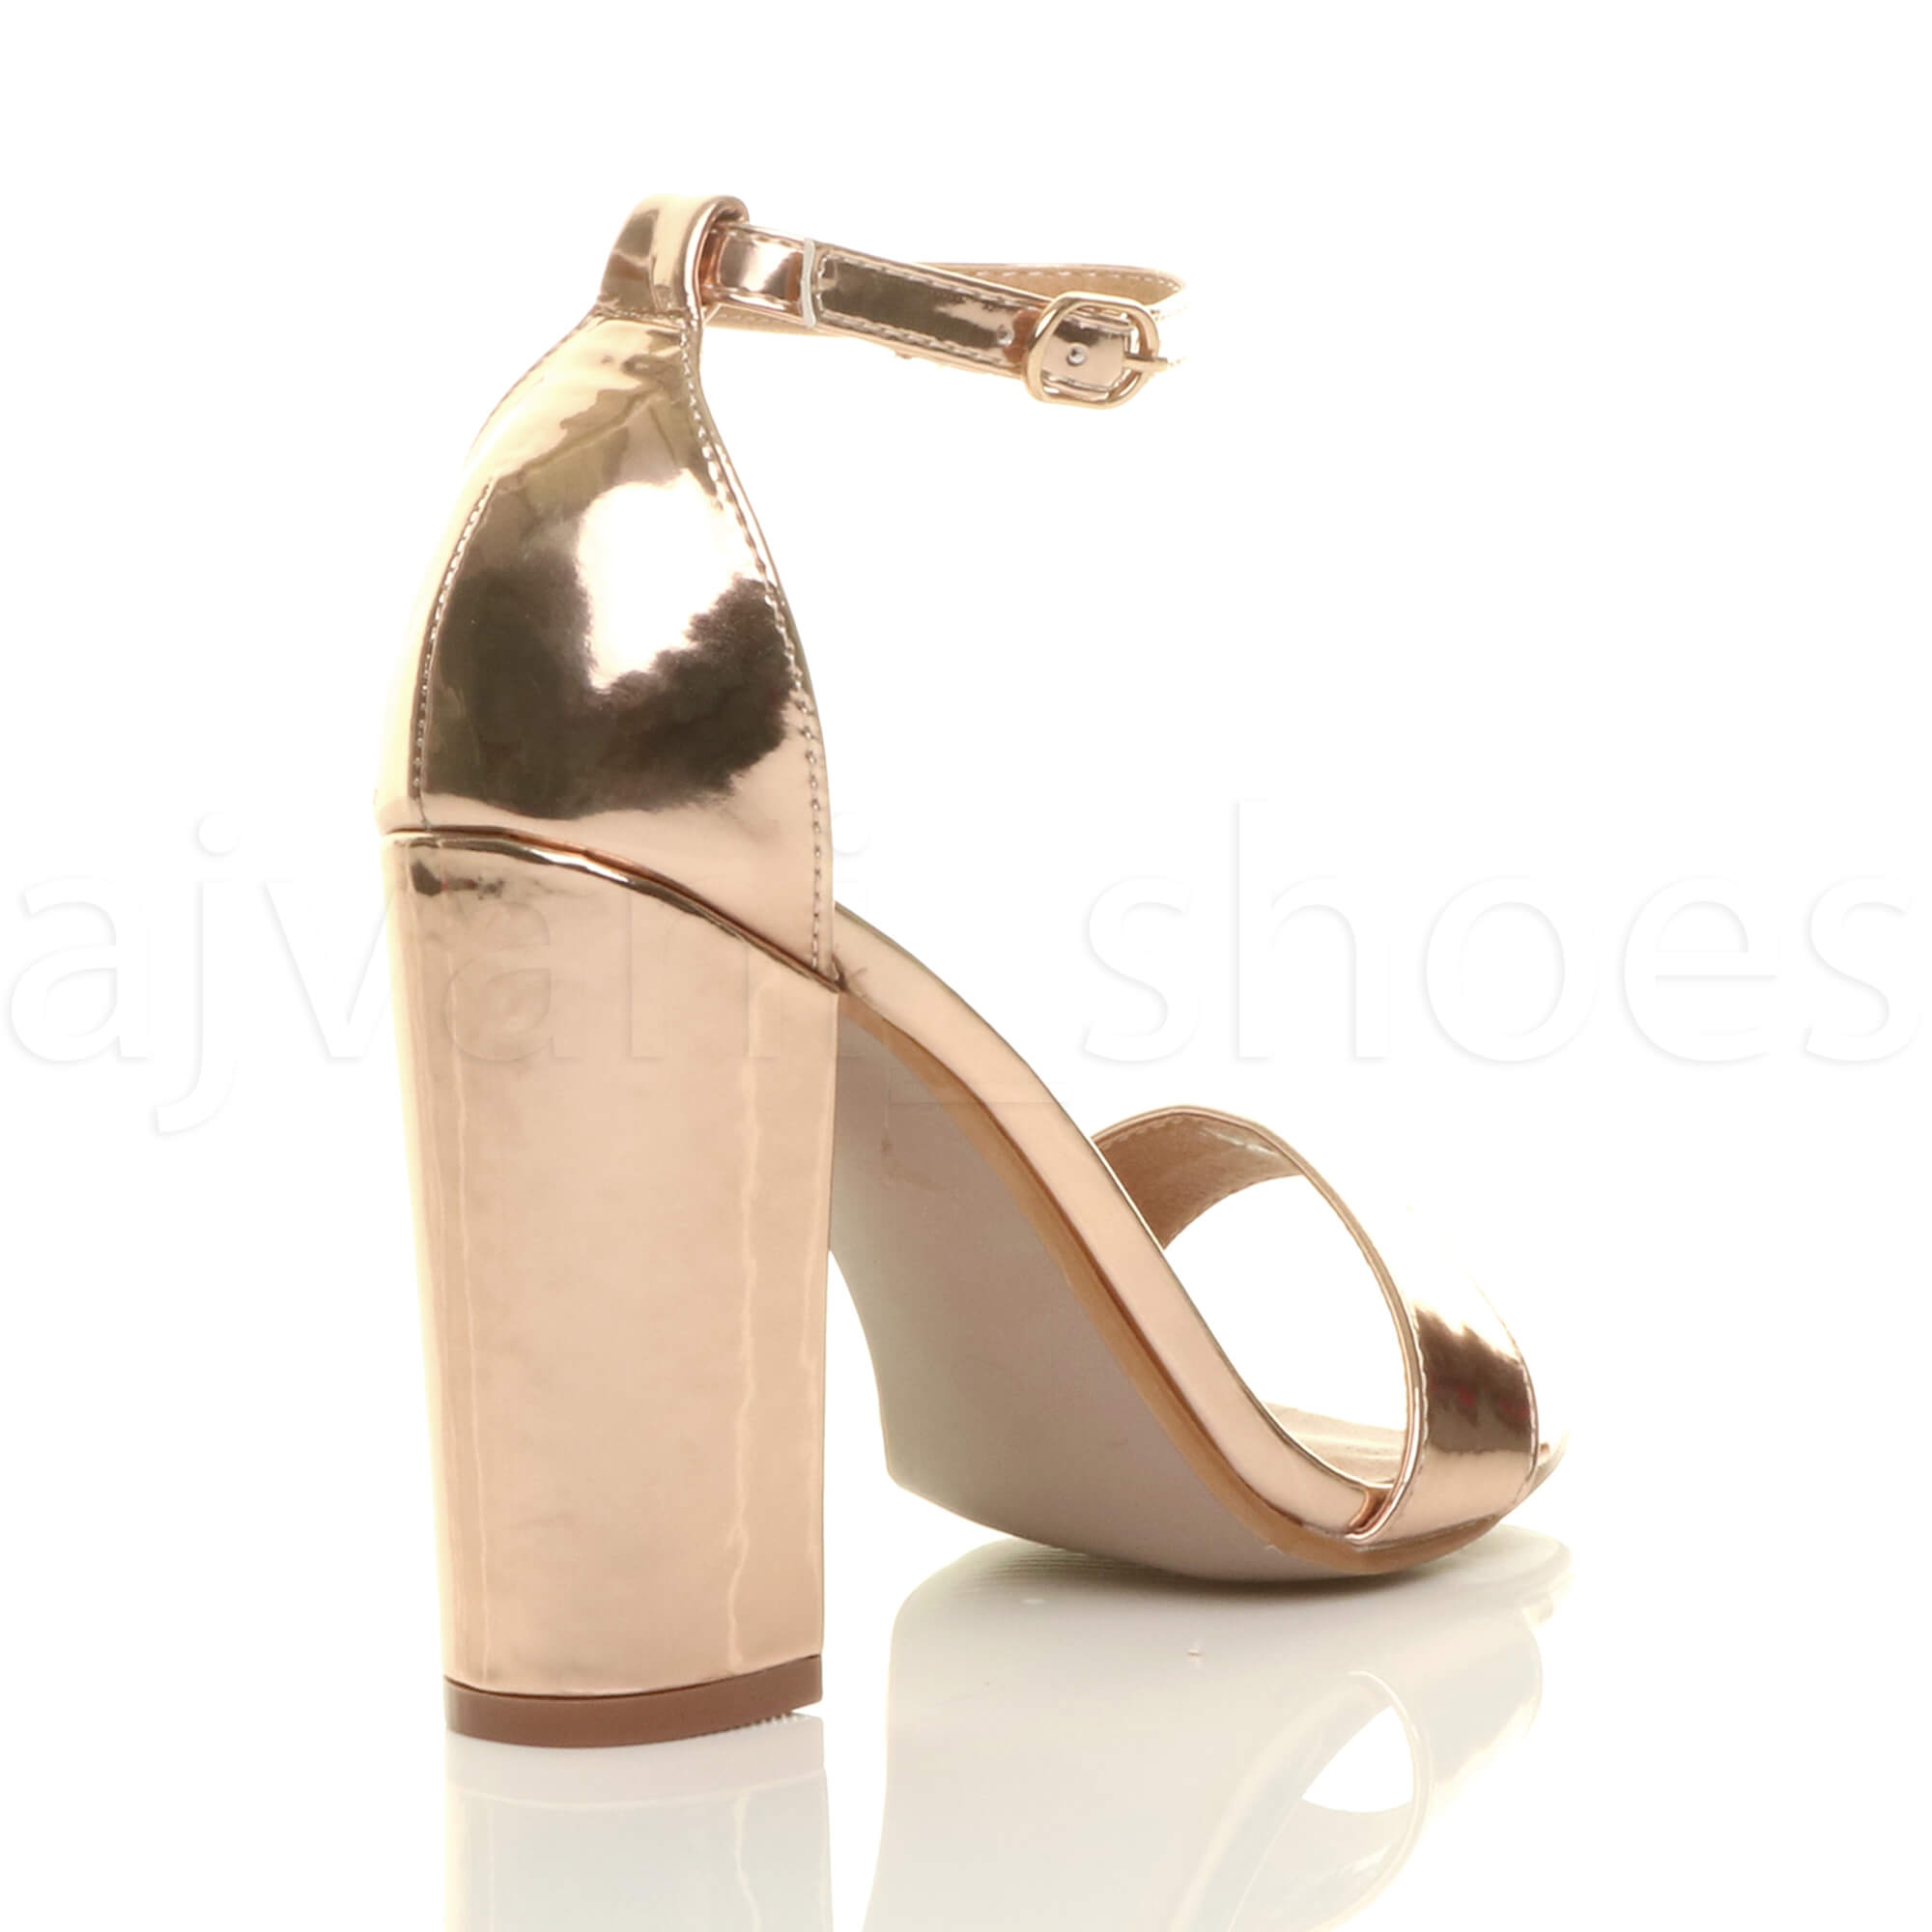 WOMENS-LADIES-BLOCK-HIGH-HEEL-ANKLE-STRAP-PEEP-TOE-STRAPPY-SANDALS-SHOES-SIZE thumbnail 142